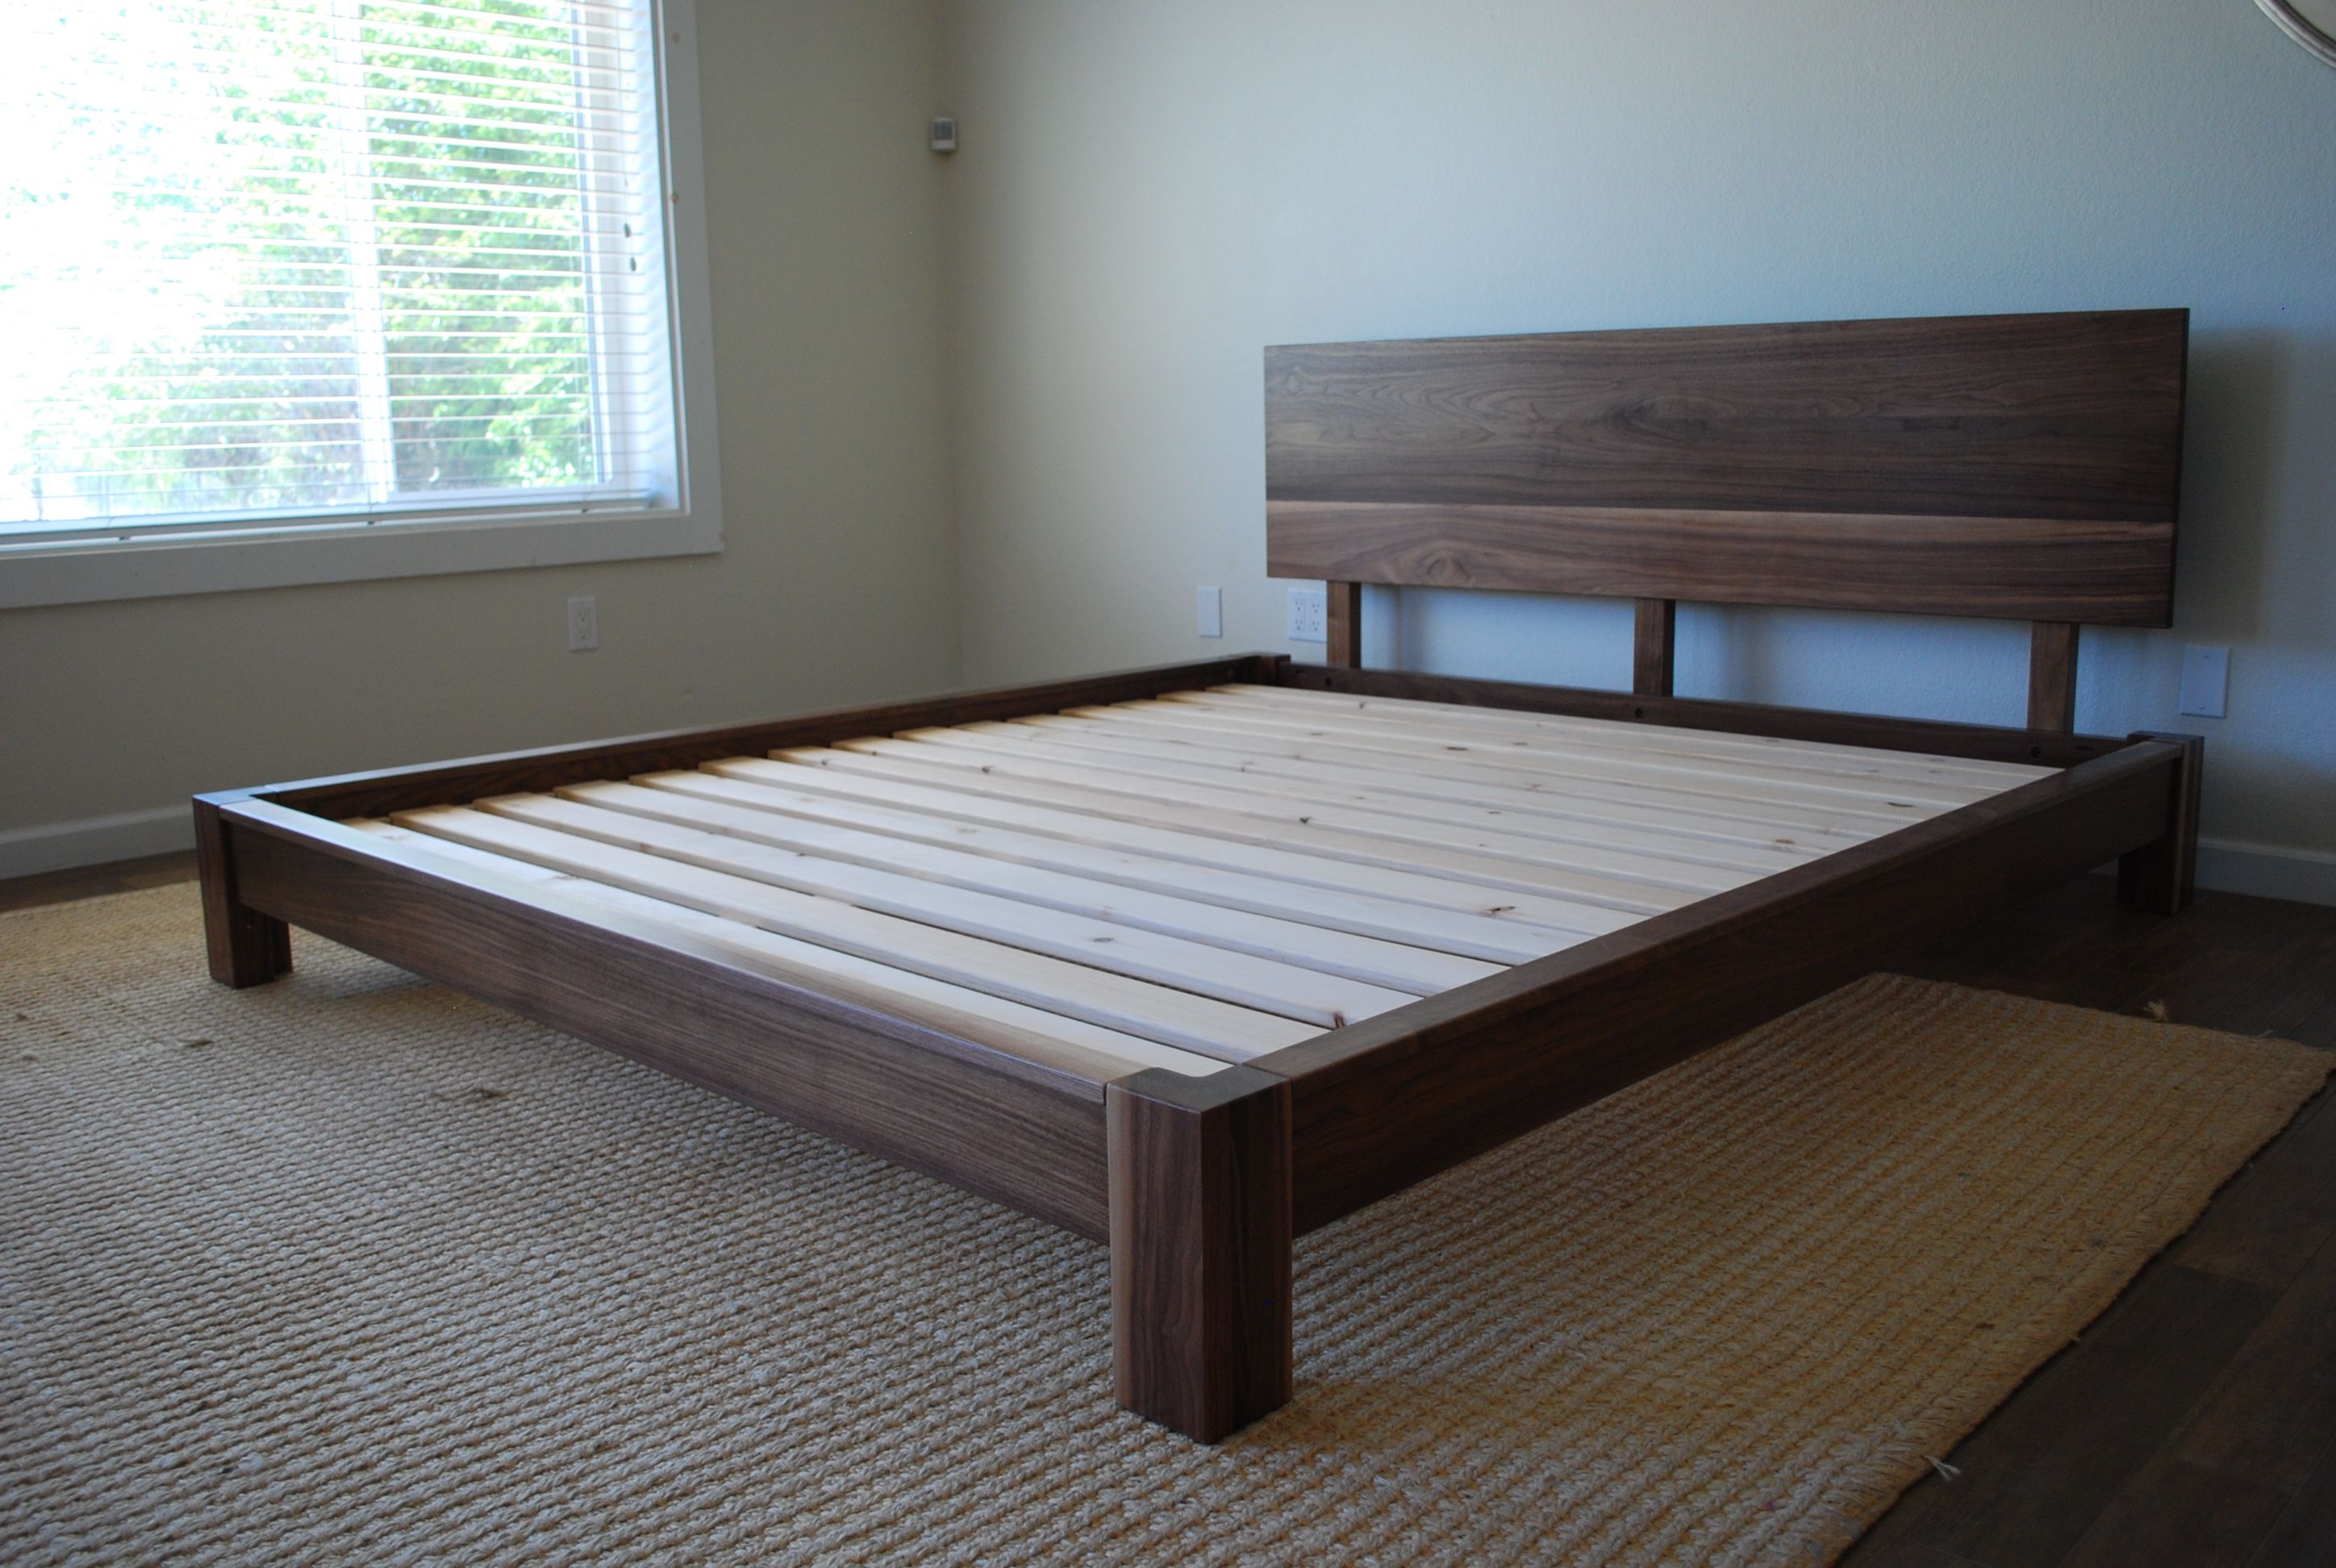 The Low Profile Platform Bed With Headboard In Solid Black Walnut Available In All Sizes And Custom Built For Your Ma Simple Bed Simple Bed Frame Hardwood Bed